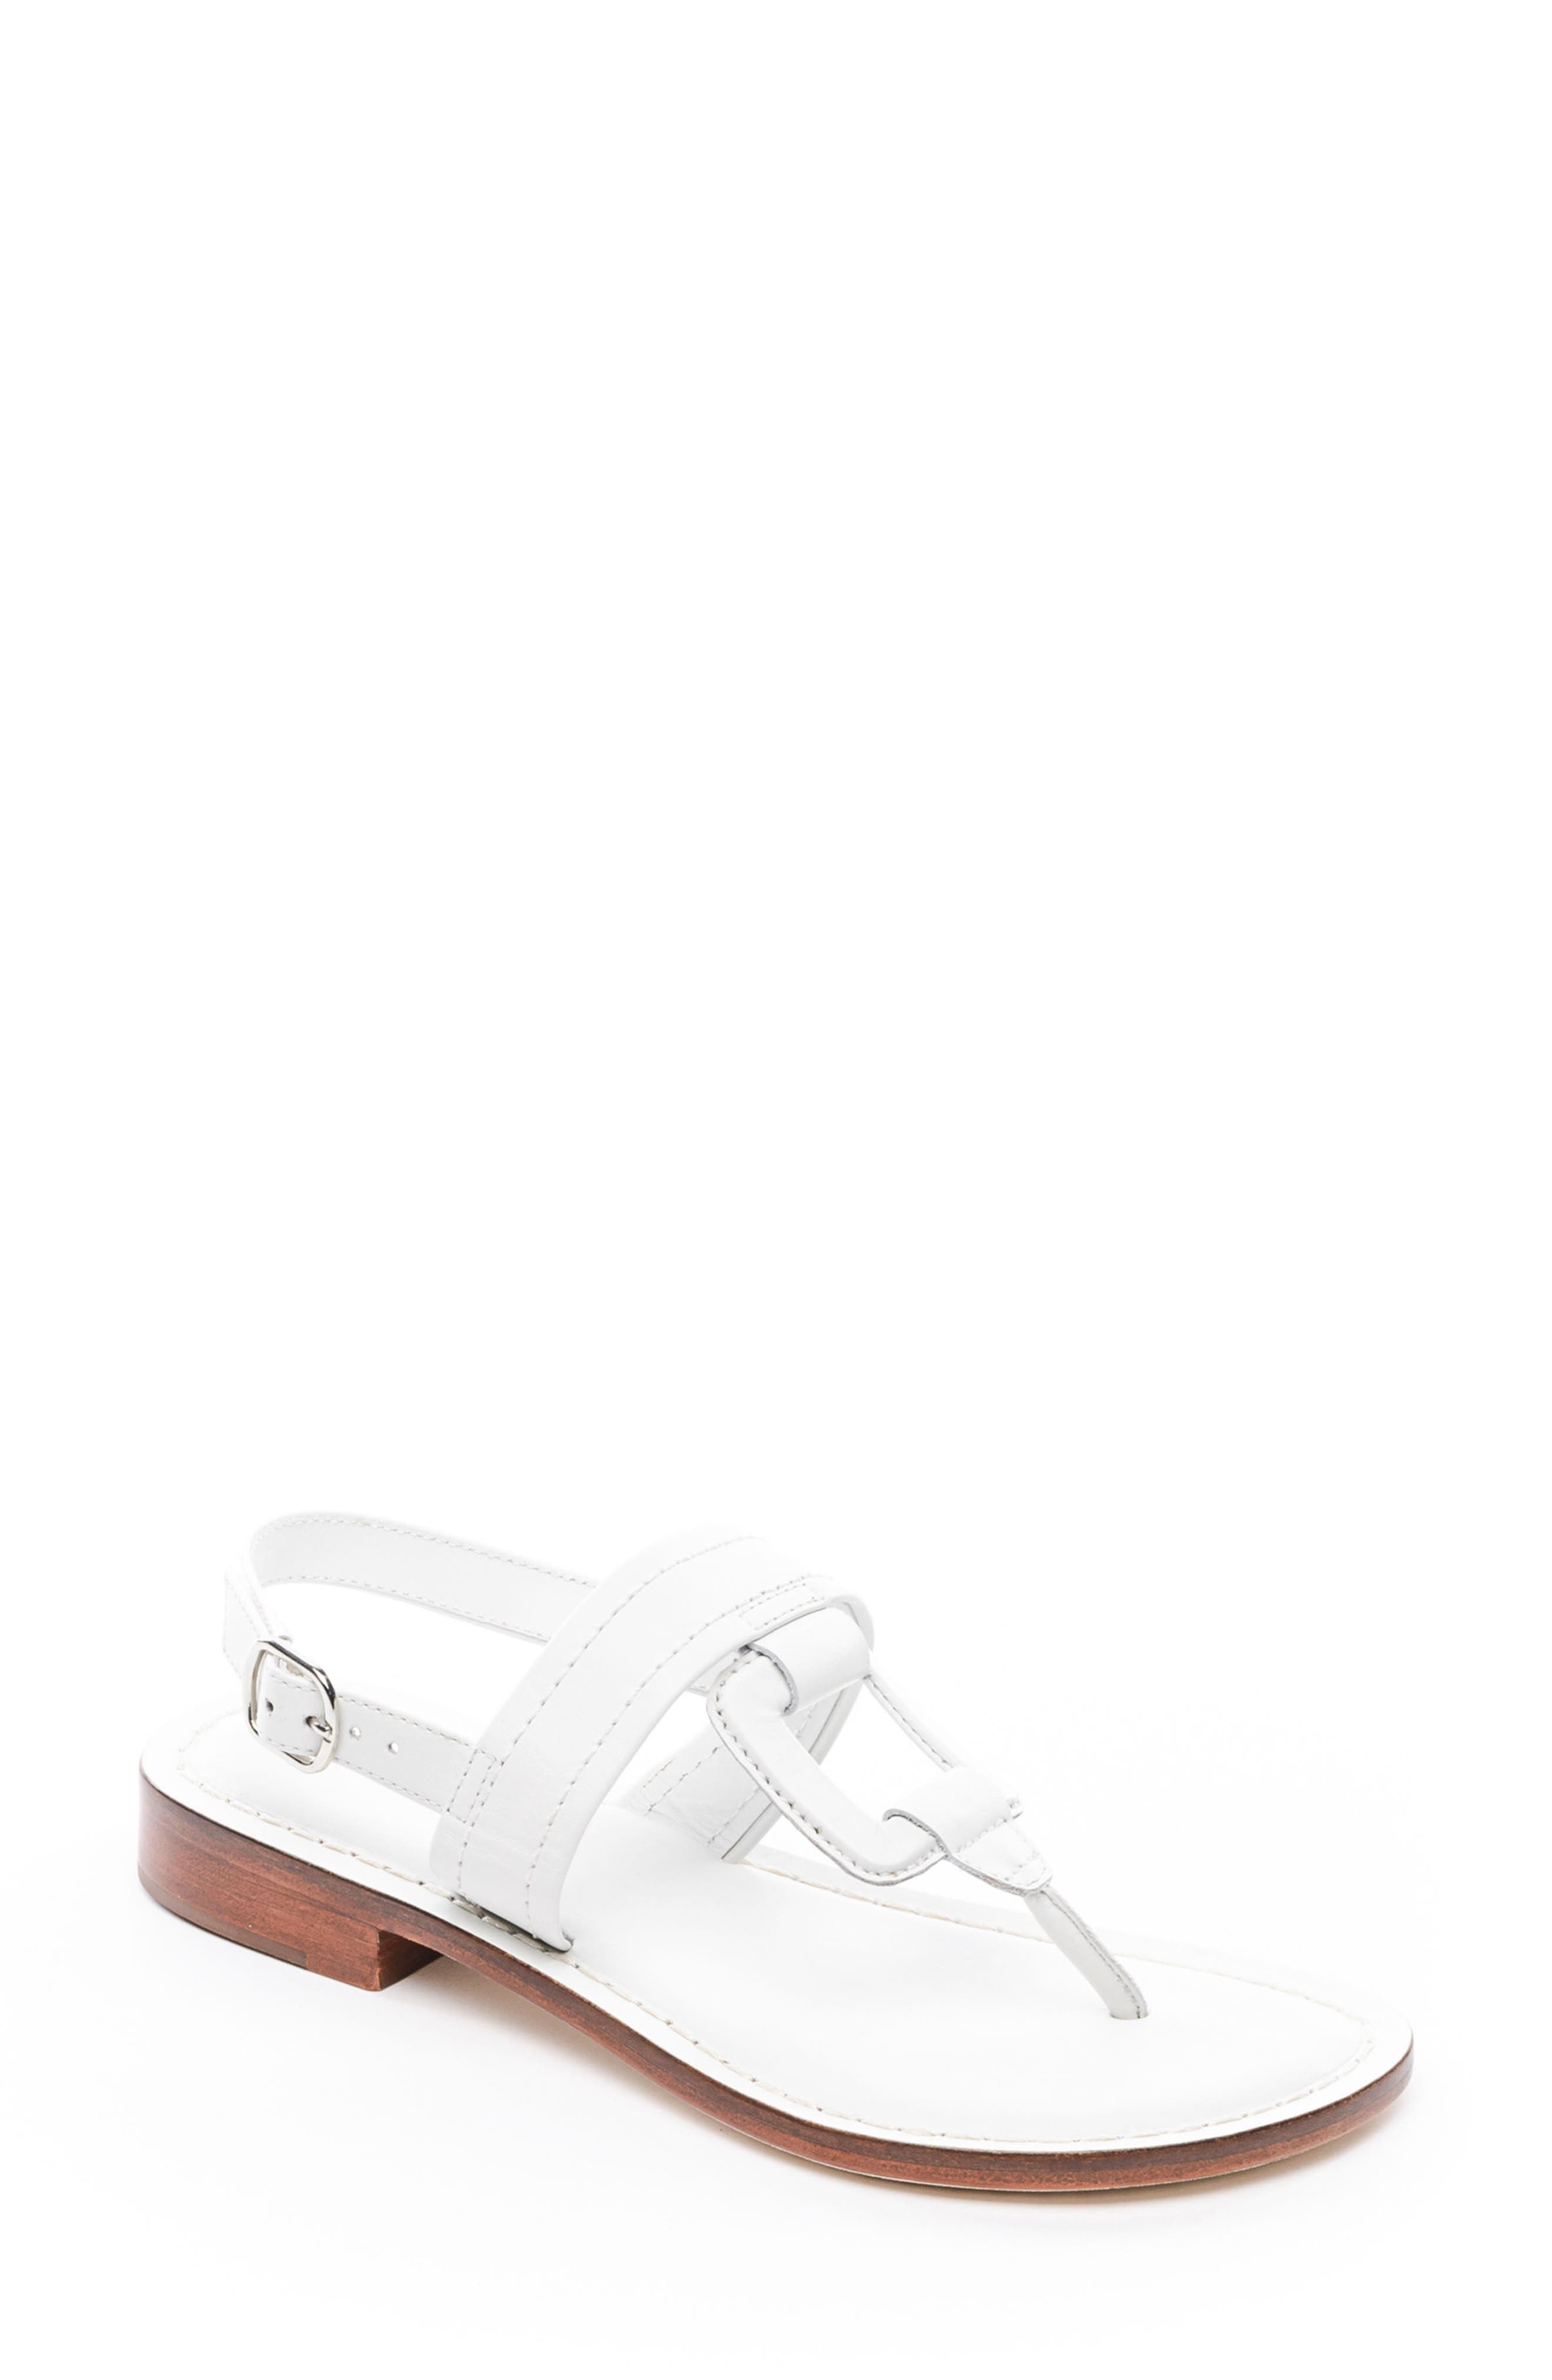 Bernardo Tegan Sandal,                         Main,                         color, WHITE LEATHER